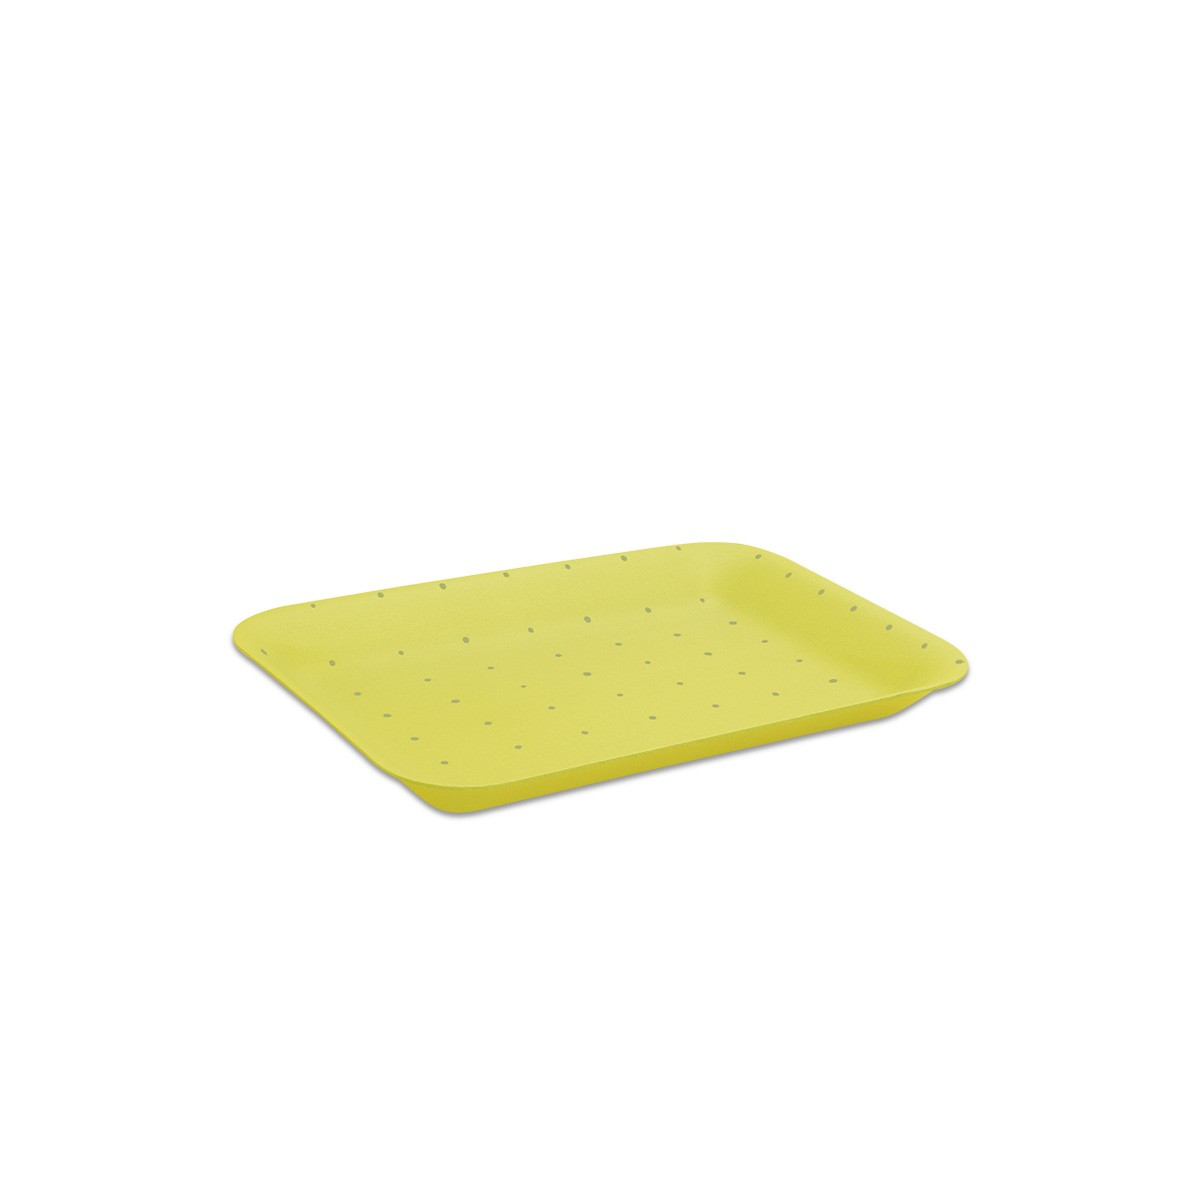 Foam Tray 216x152x20mm - Absorbent/Yellow | 500pcs